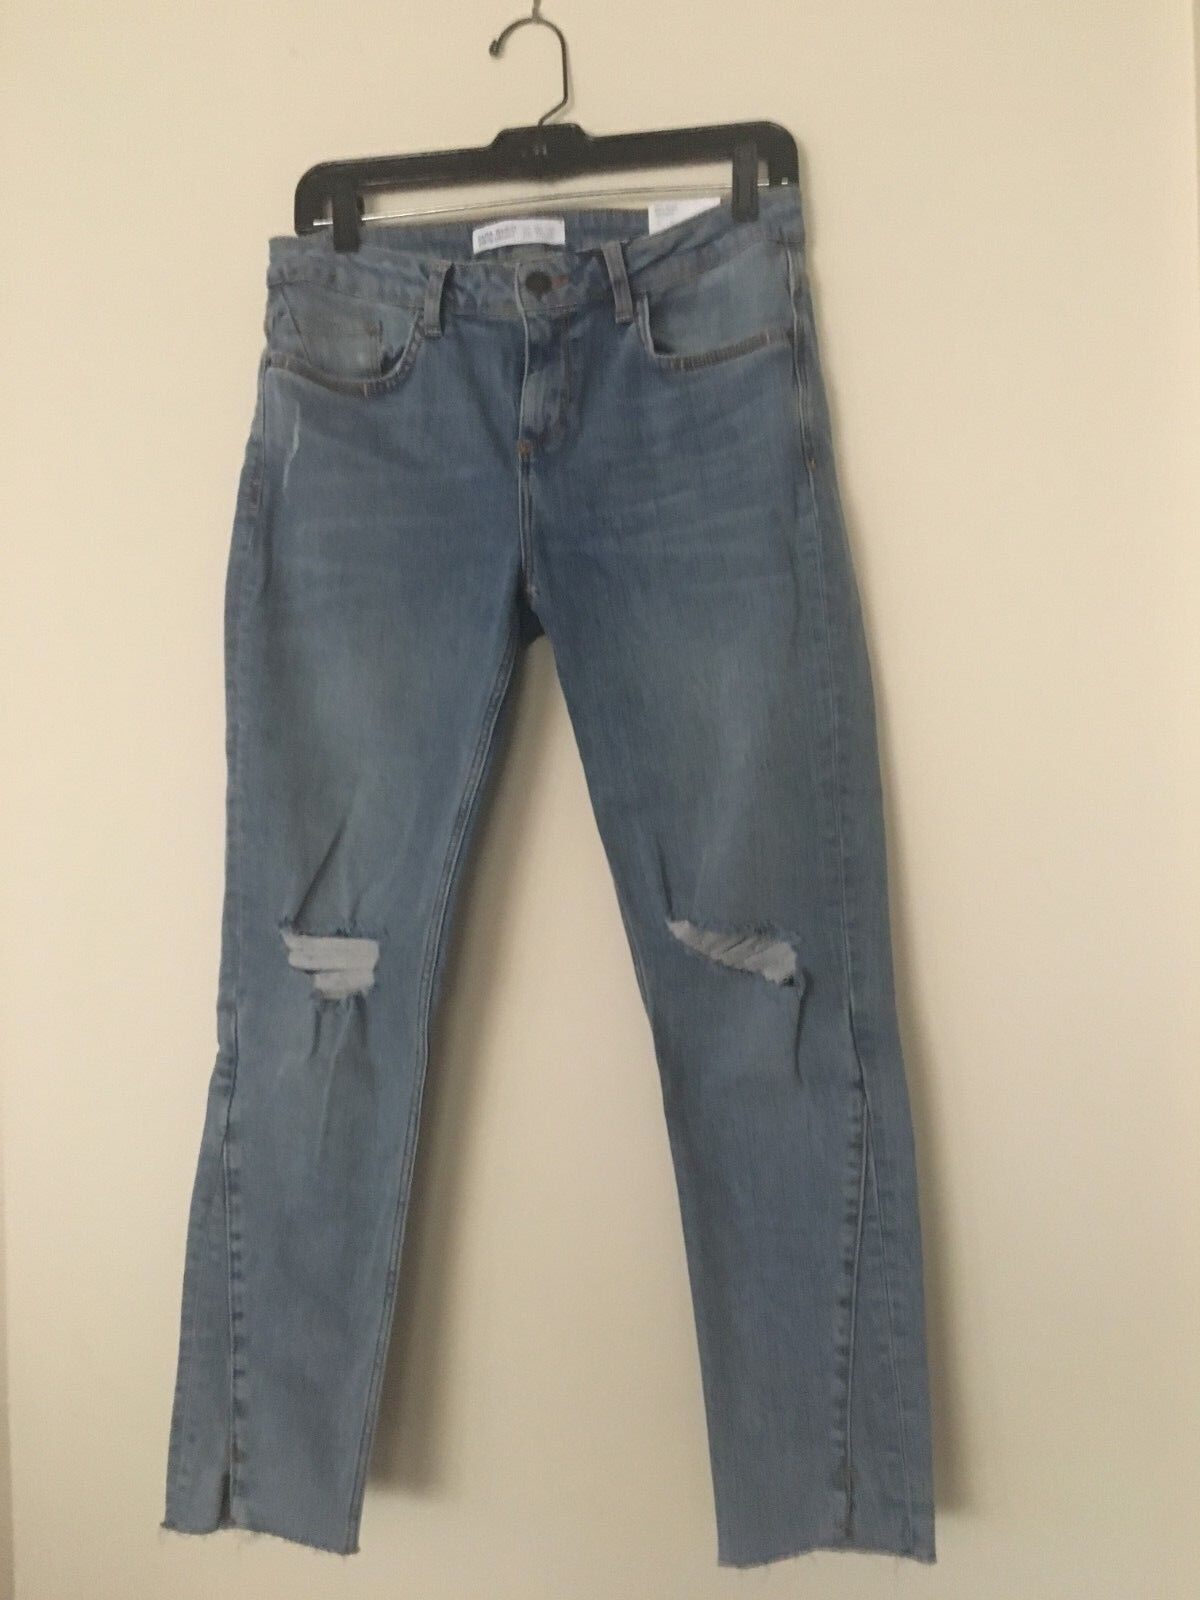 NWT  ZARA BASIC SOFT JEANS FADED blueE MID RISE SKINNY RIPPED SIZE 40 (US 8)